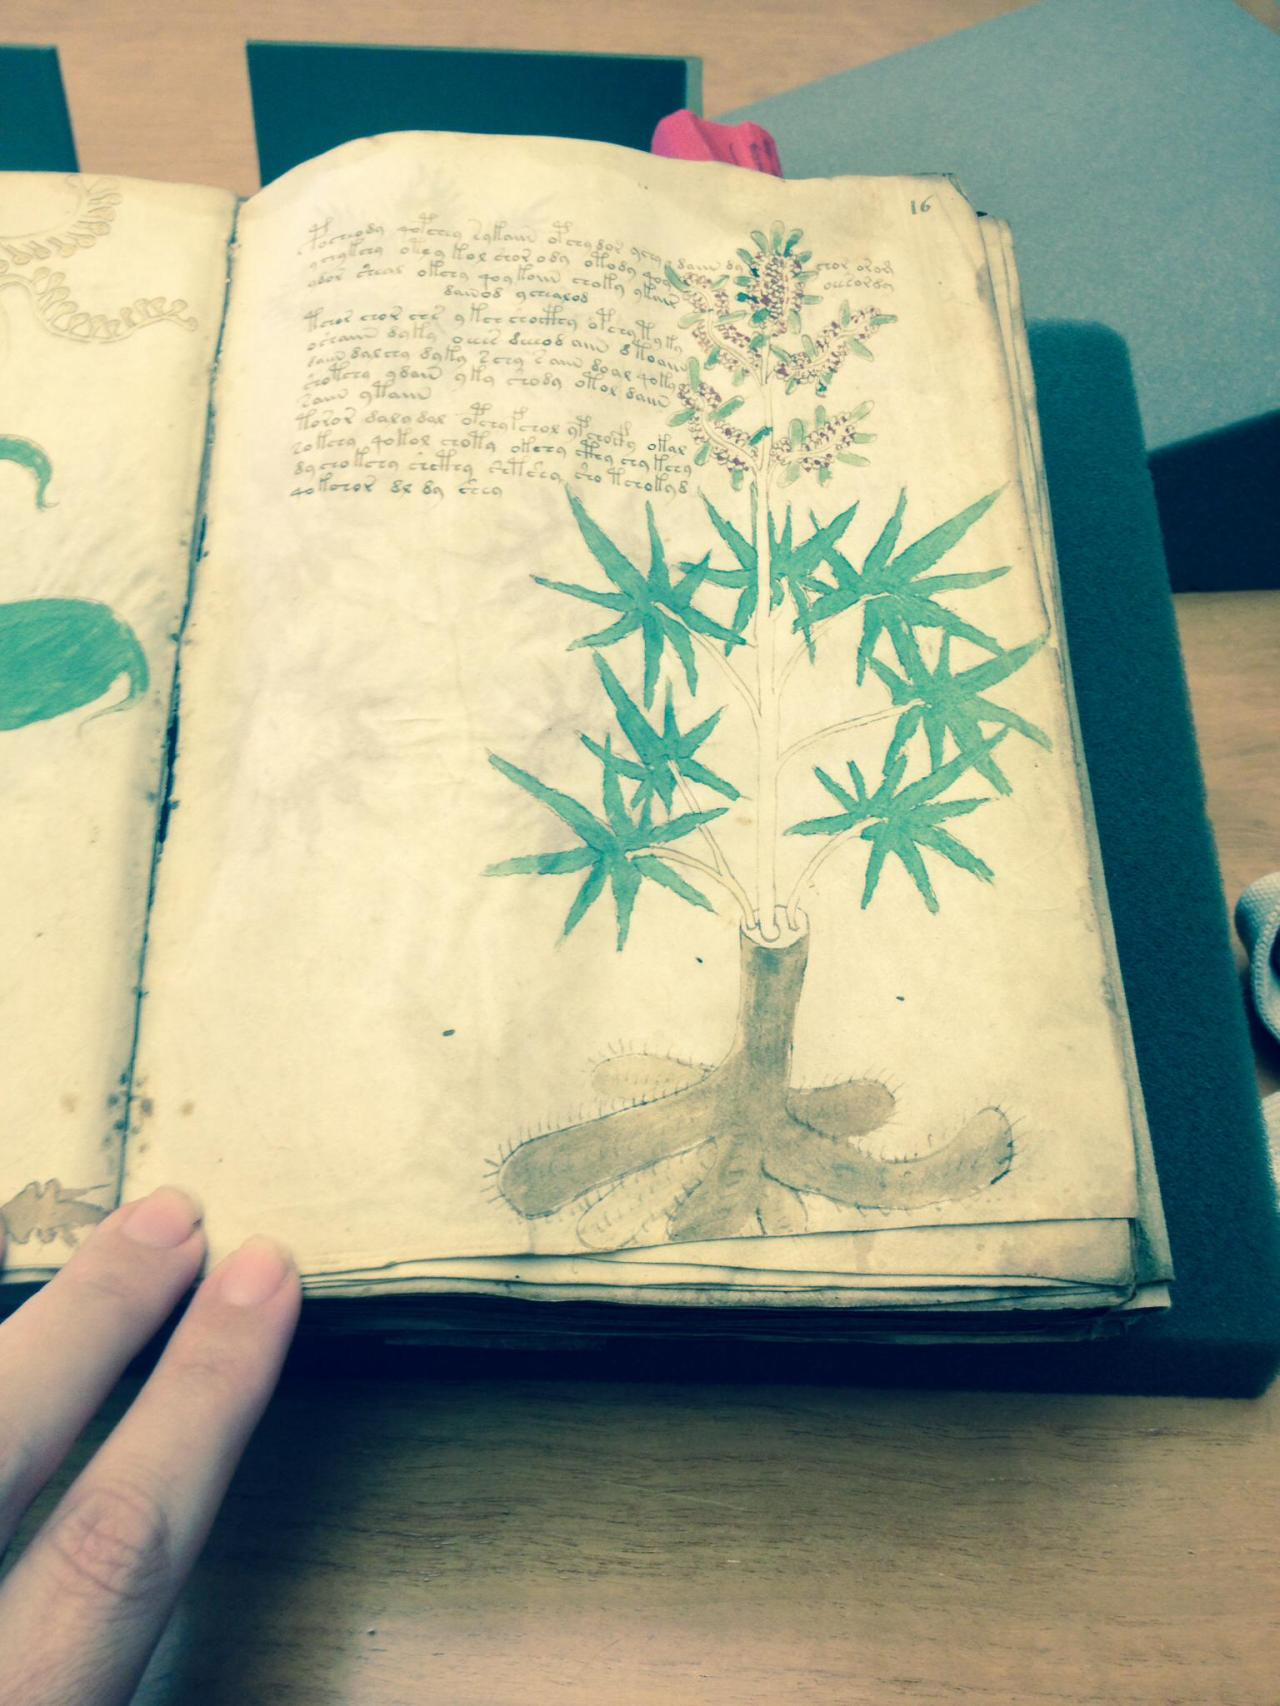 The Voynich Manuscript. Photo by Hillary Raimo Yale University 11/19/13